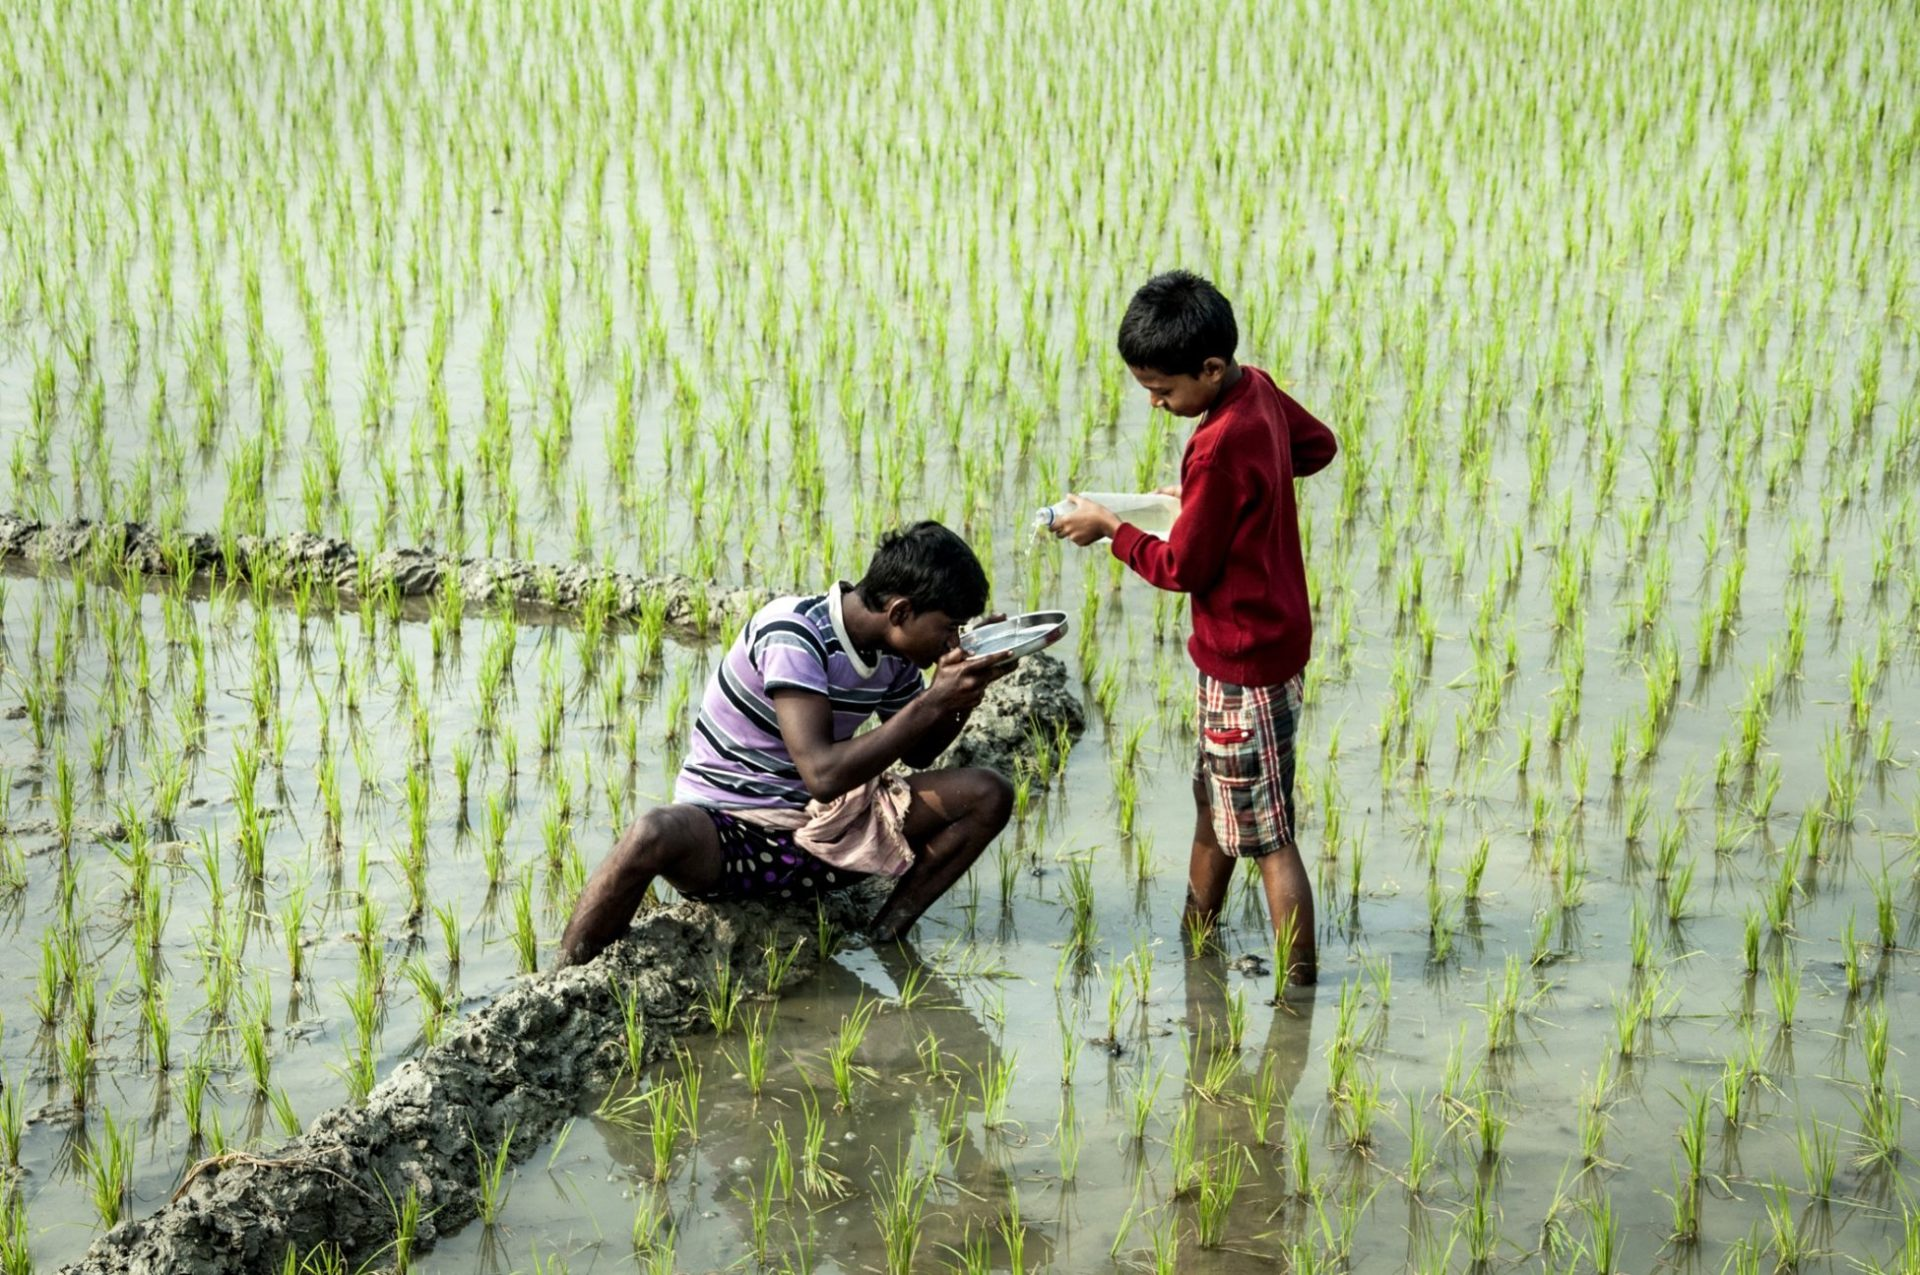 Little boy standing in the marsh, pours water from a bottle into a vessel that a young man drinks from as he sit on a log..